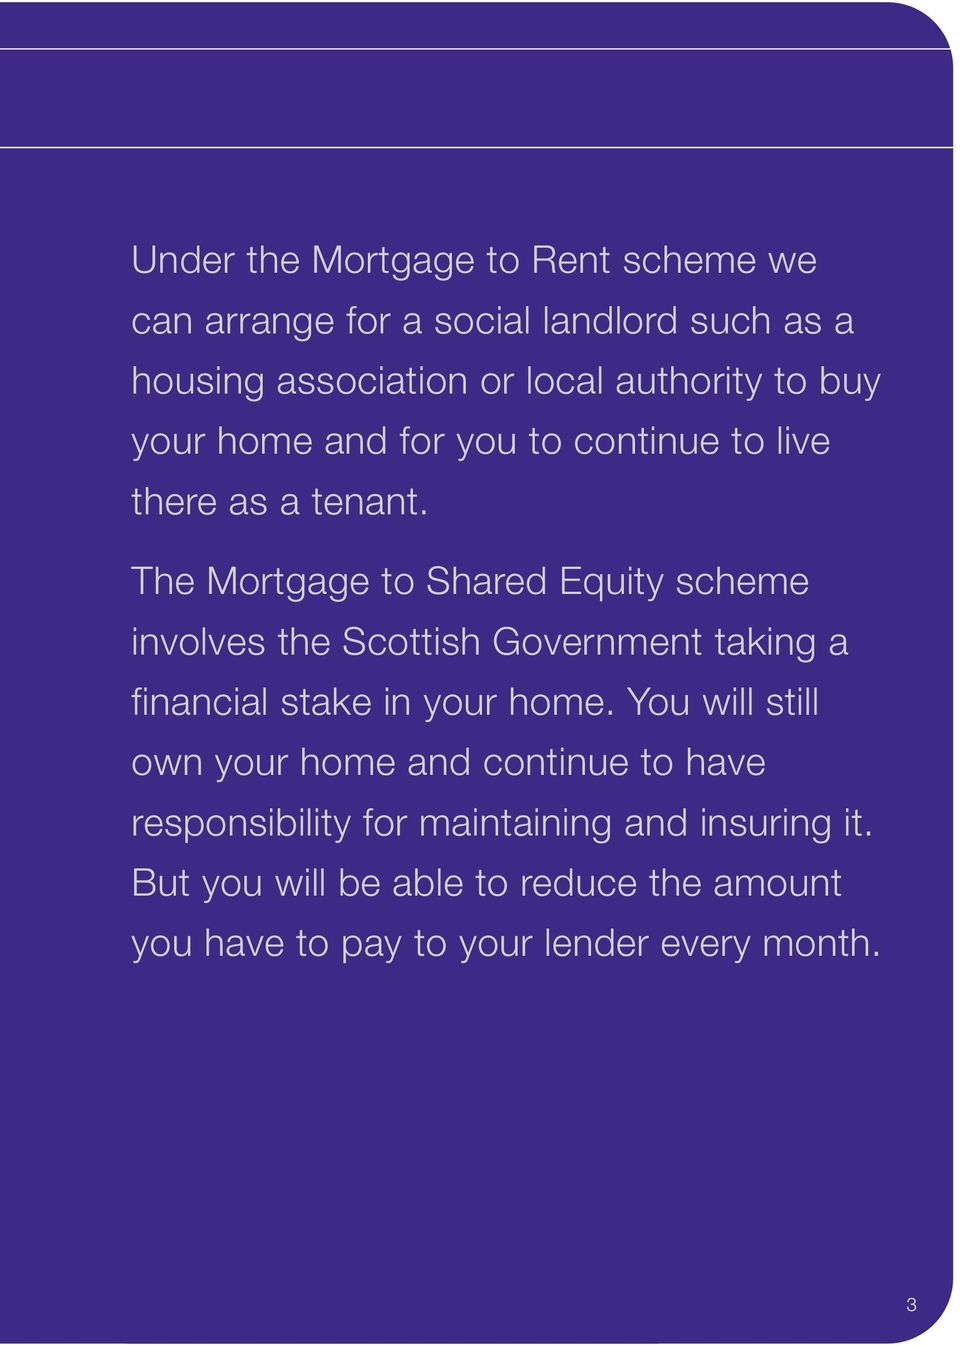 The Mortgage to Shared Equity scheme involves the Scottish Government taking a financial stake in your home.